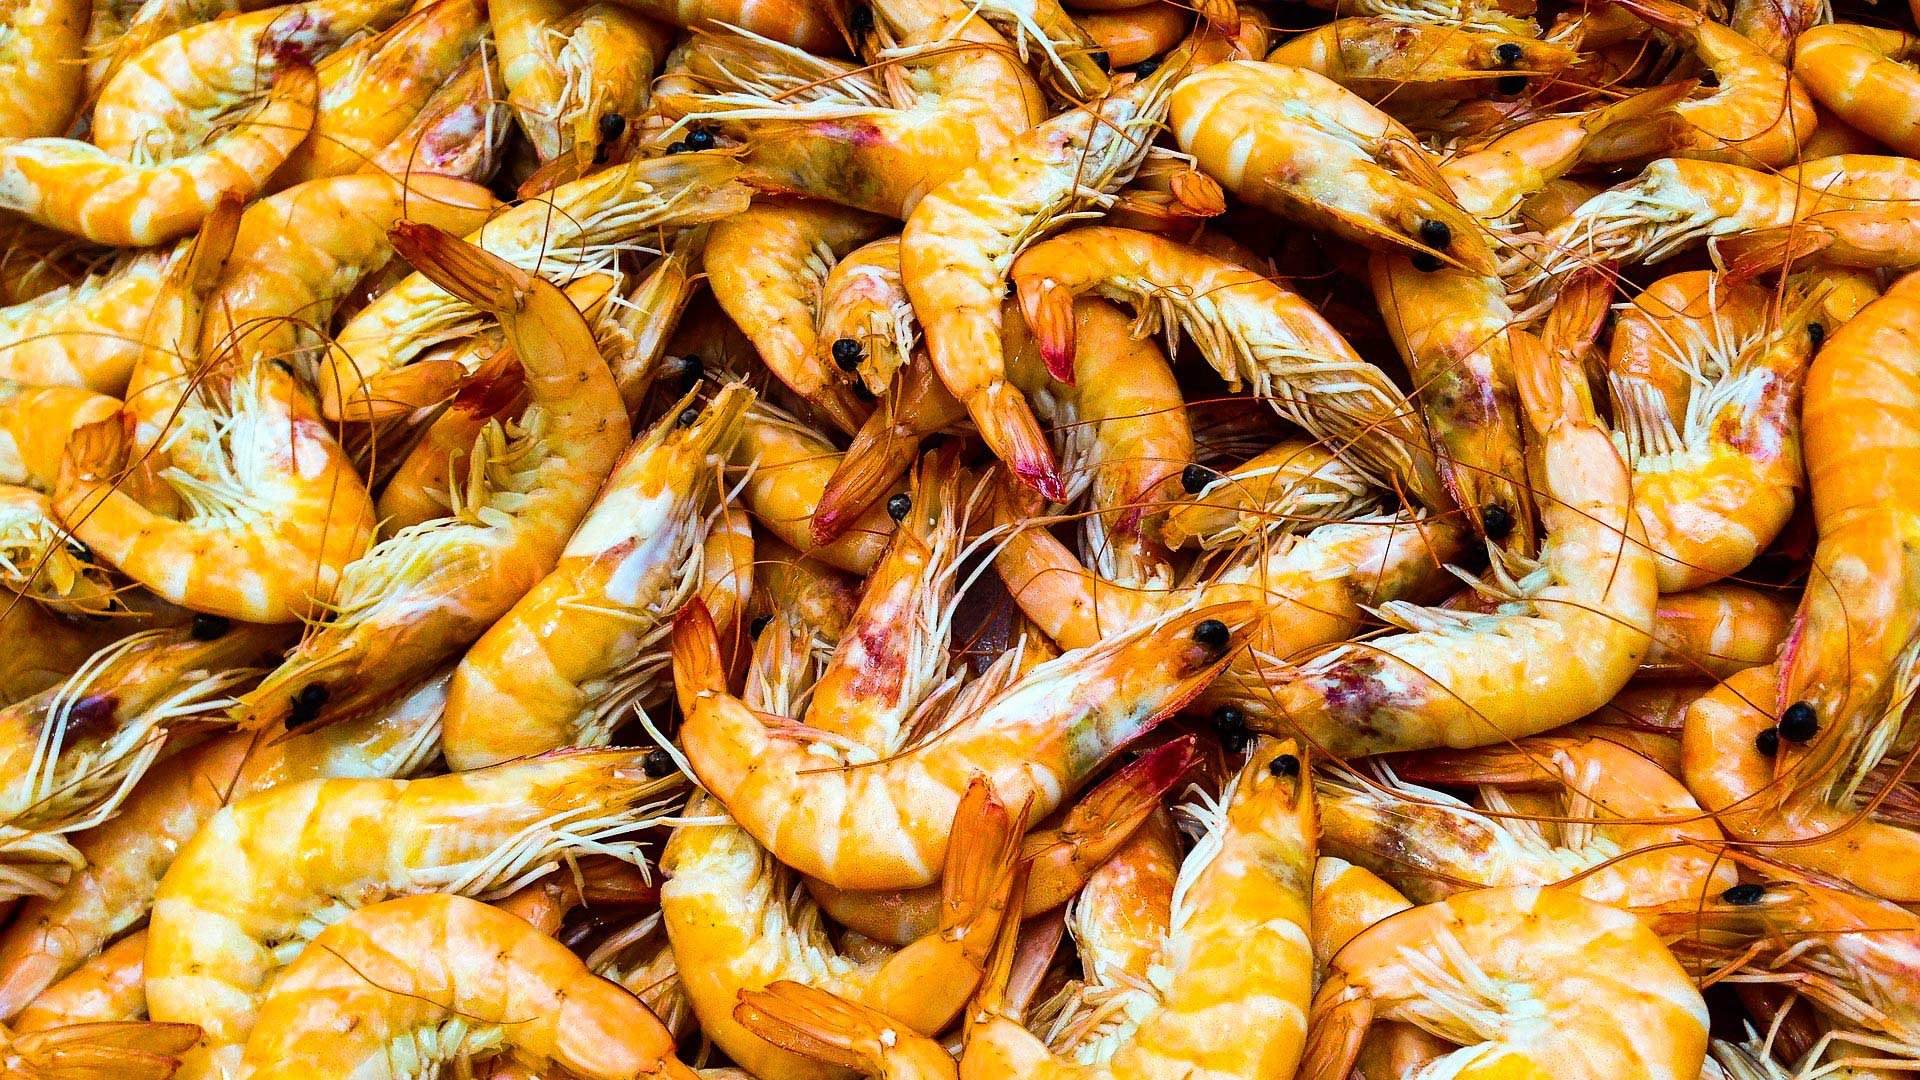 Farmed shrimp is a $40 billion industry.